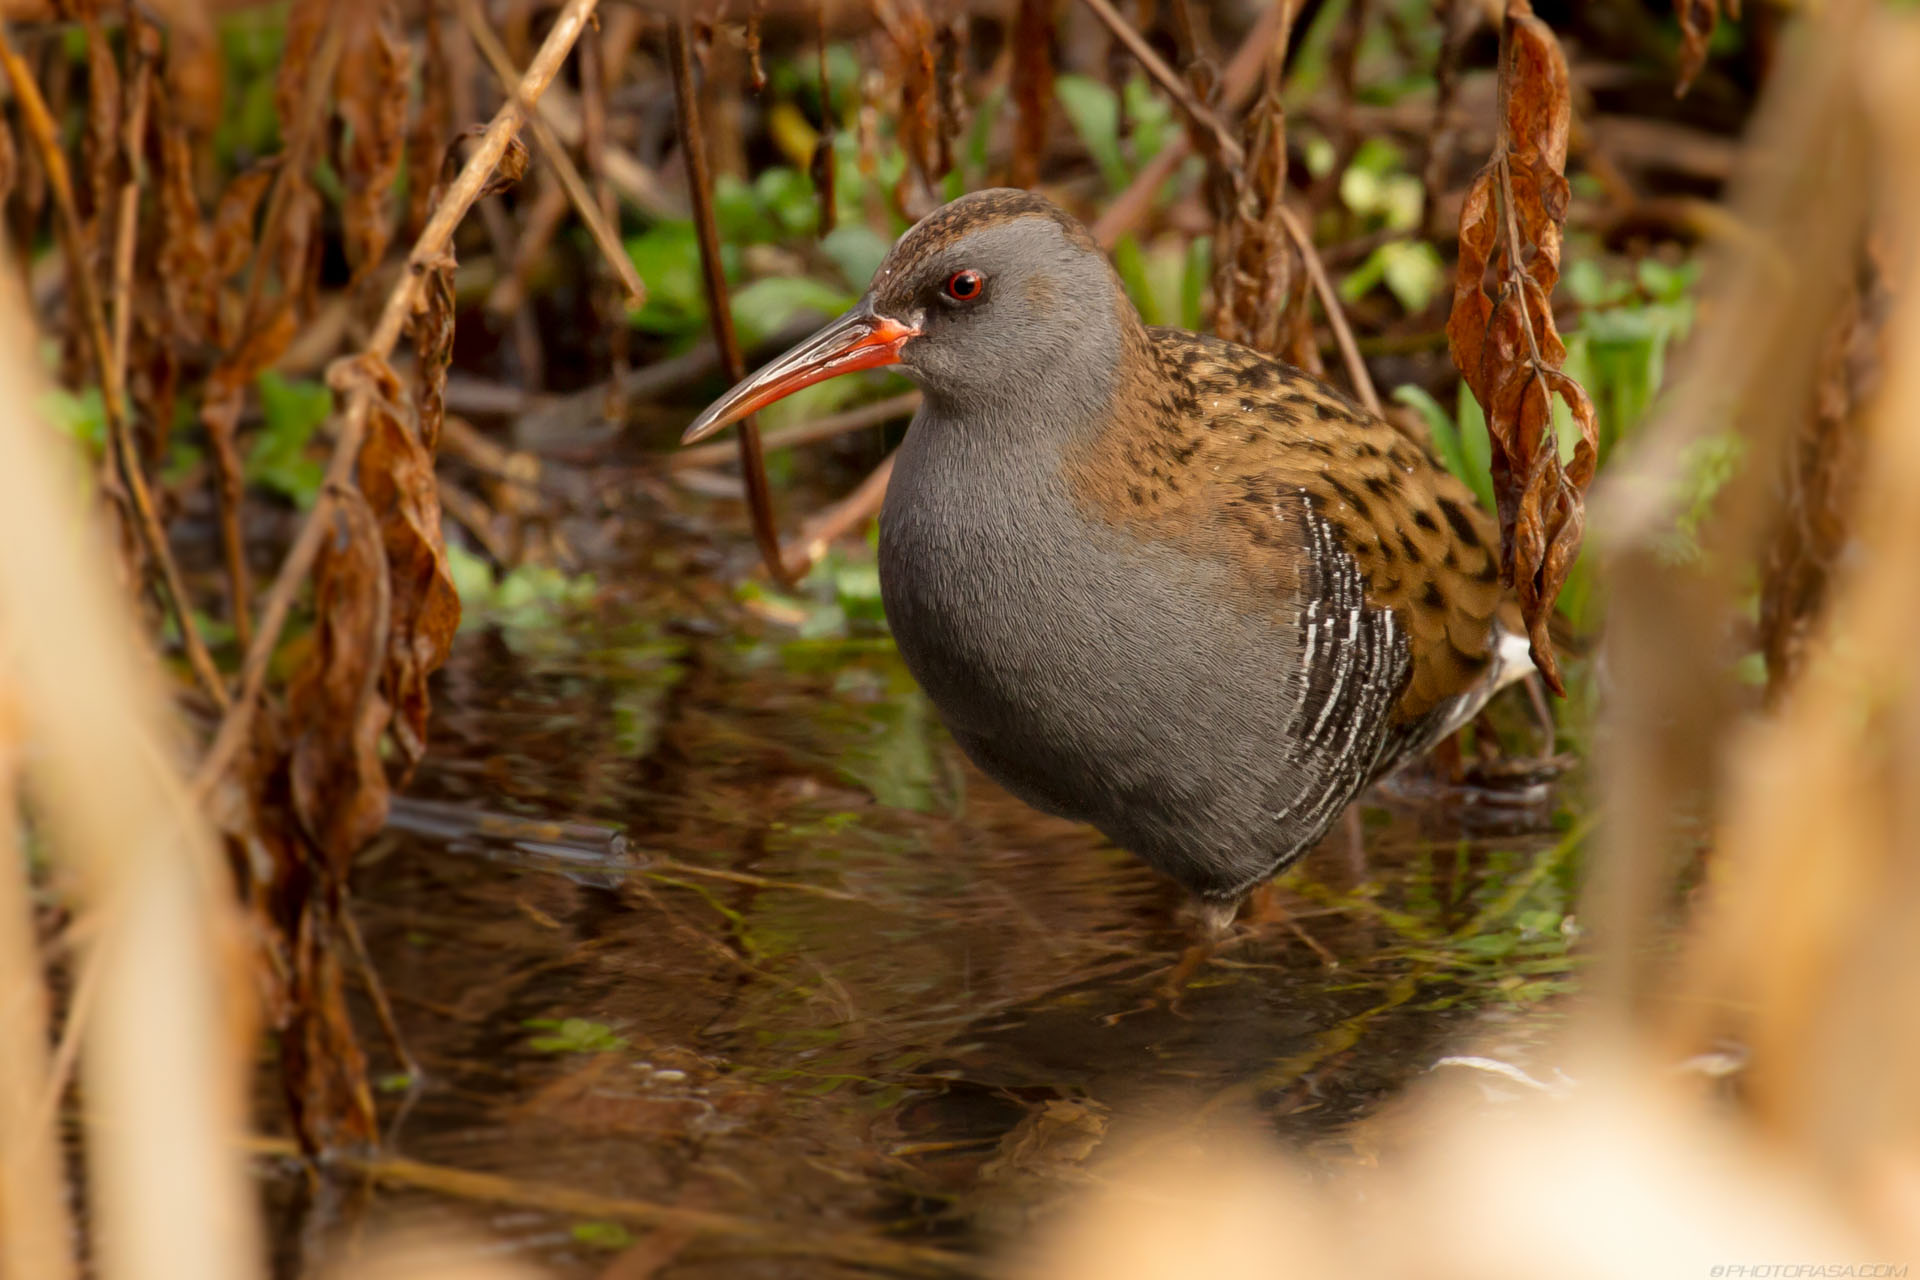 https://photorasa.com/water-rail-by-the-stream/water-rail-looking-left/